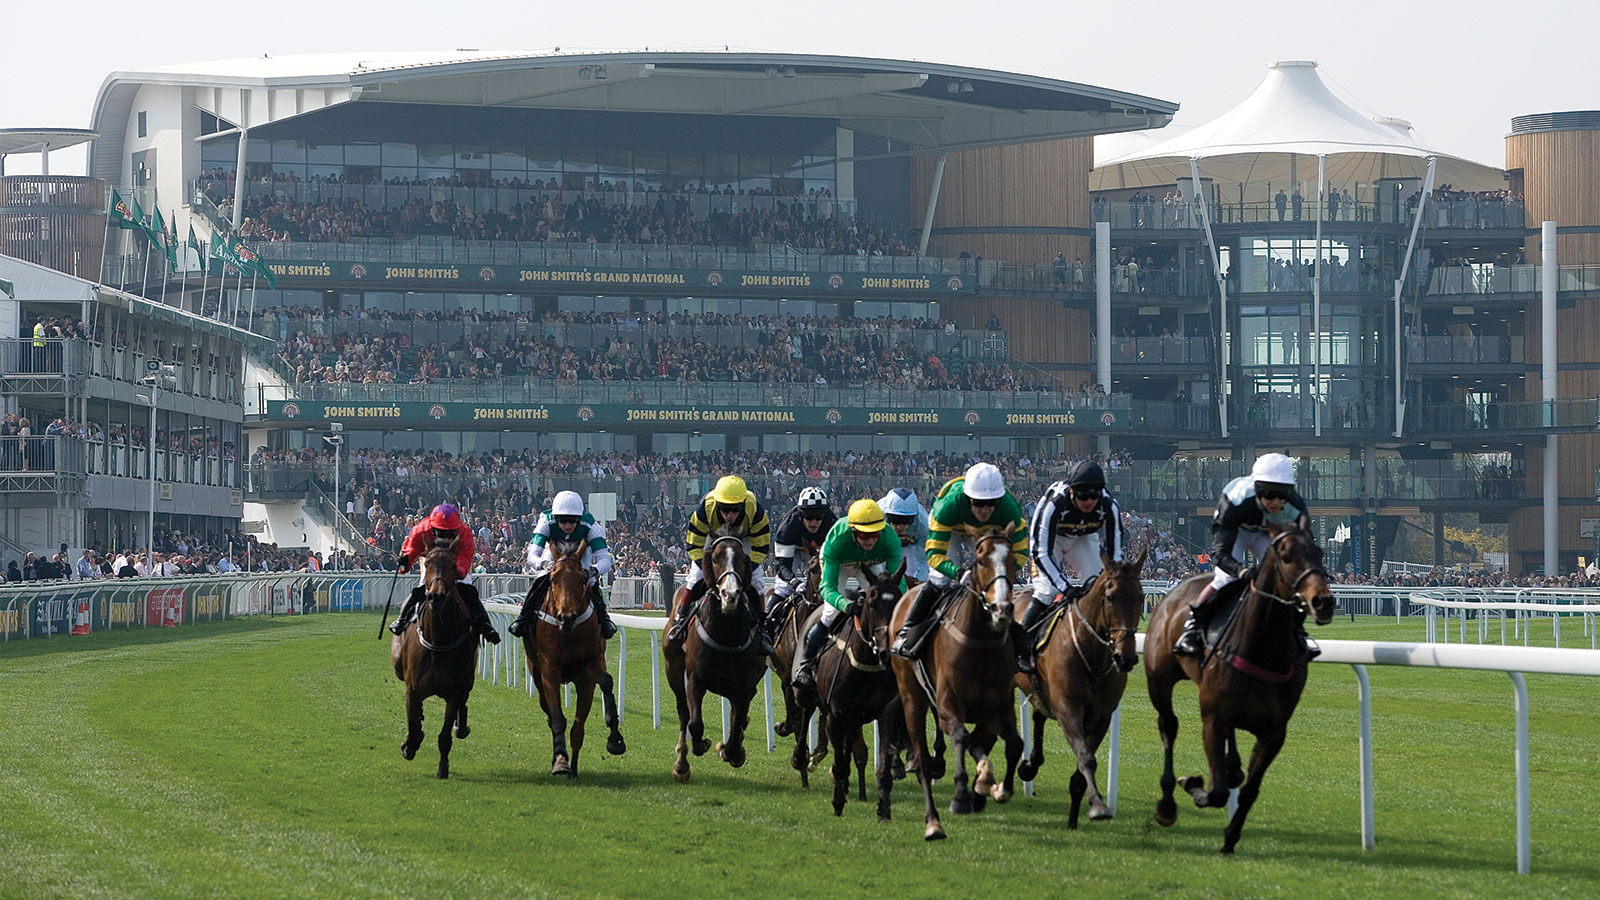 The most challenging steeplechases in the world are at Aintree